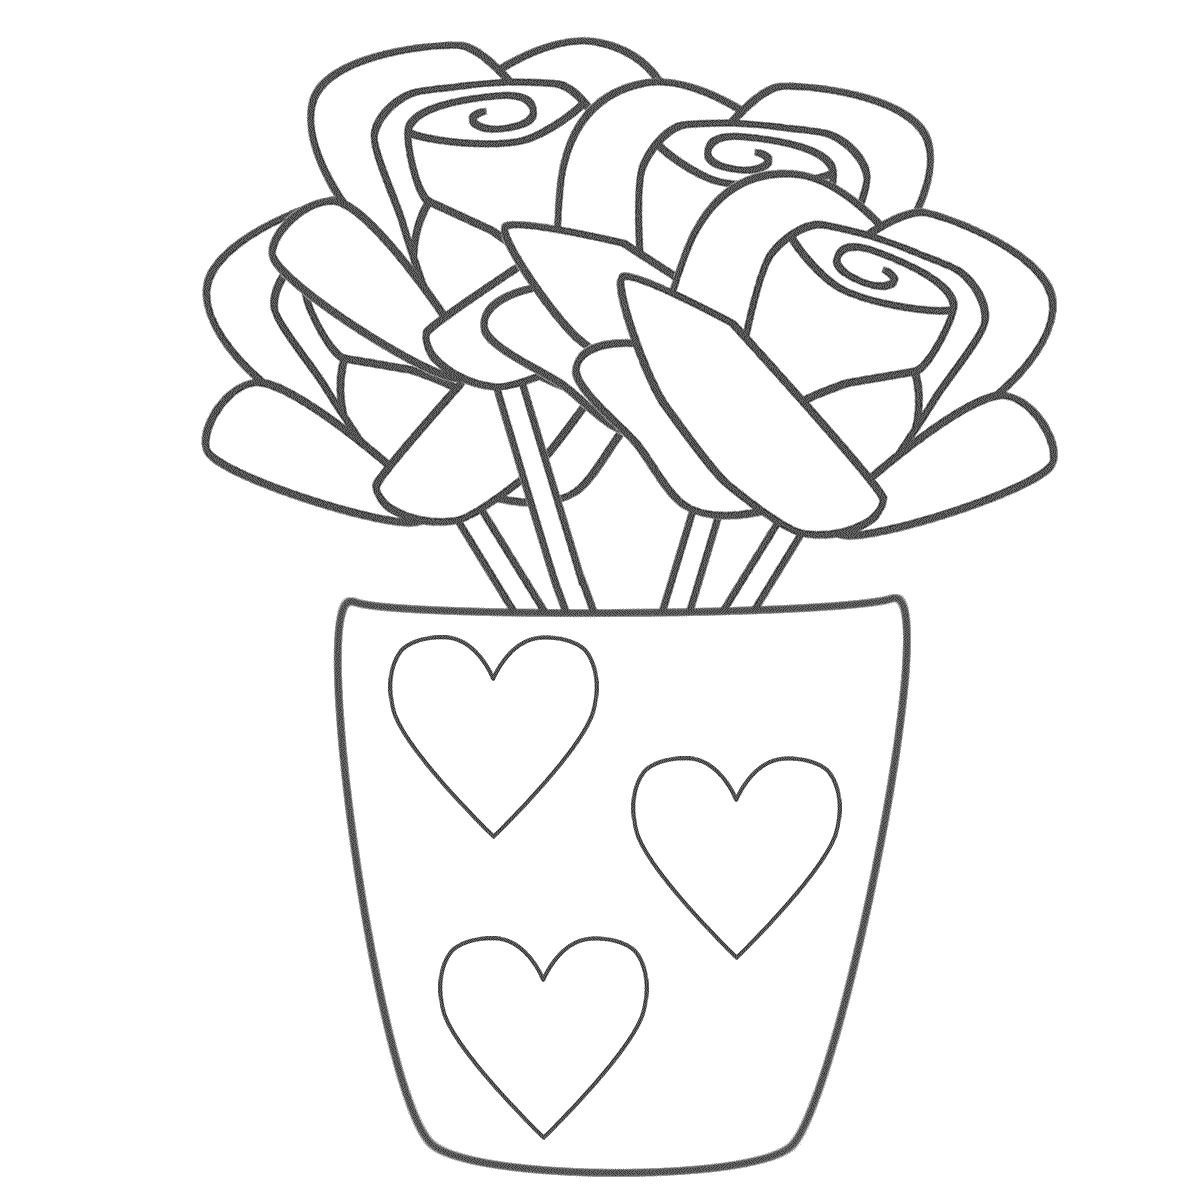 1200x1200 Coloring Pages Of Flowers And Hearts Free Printable Adult Pictures